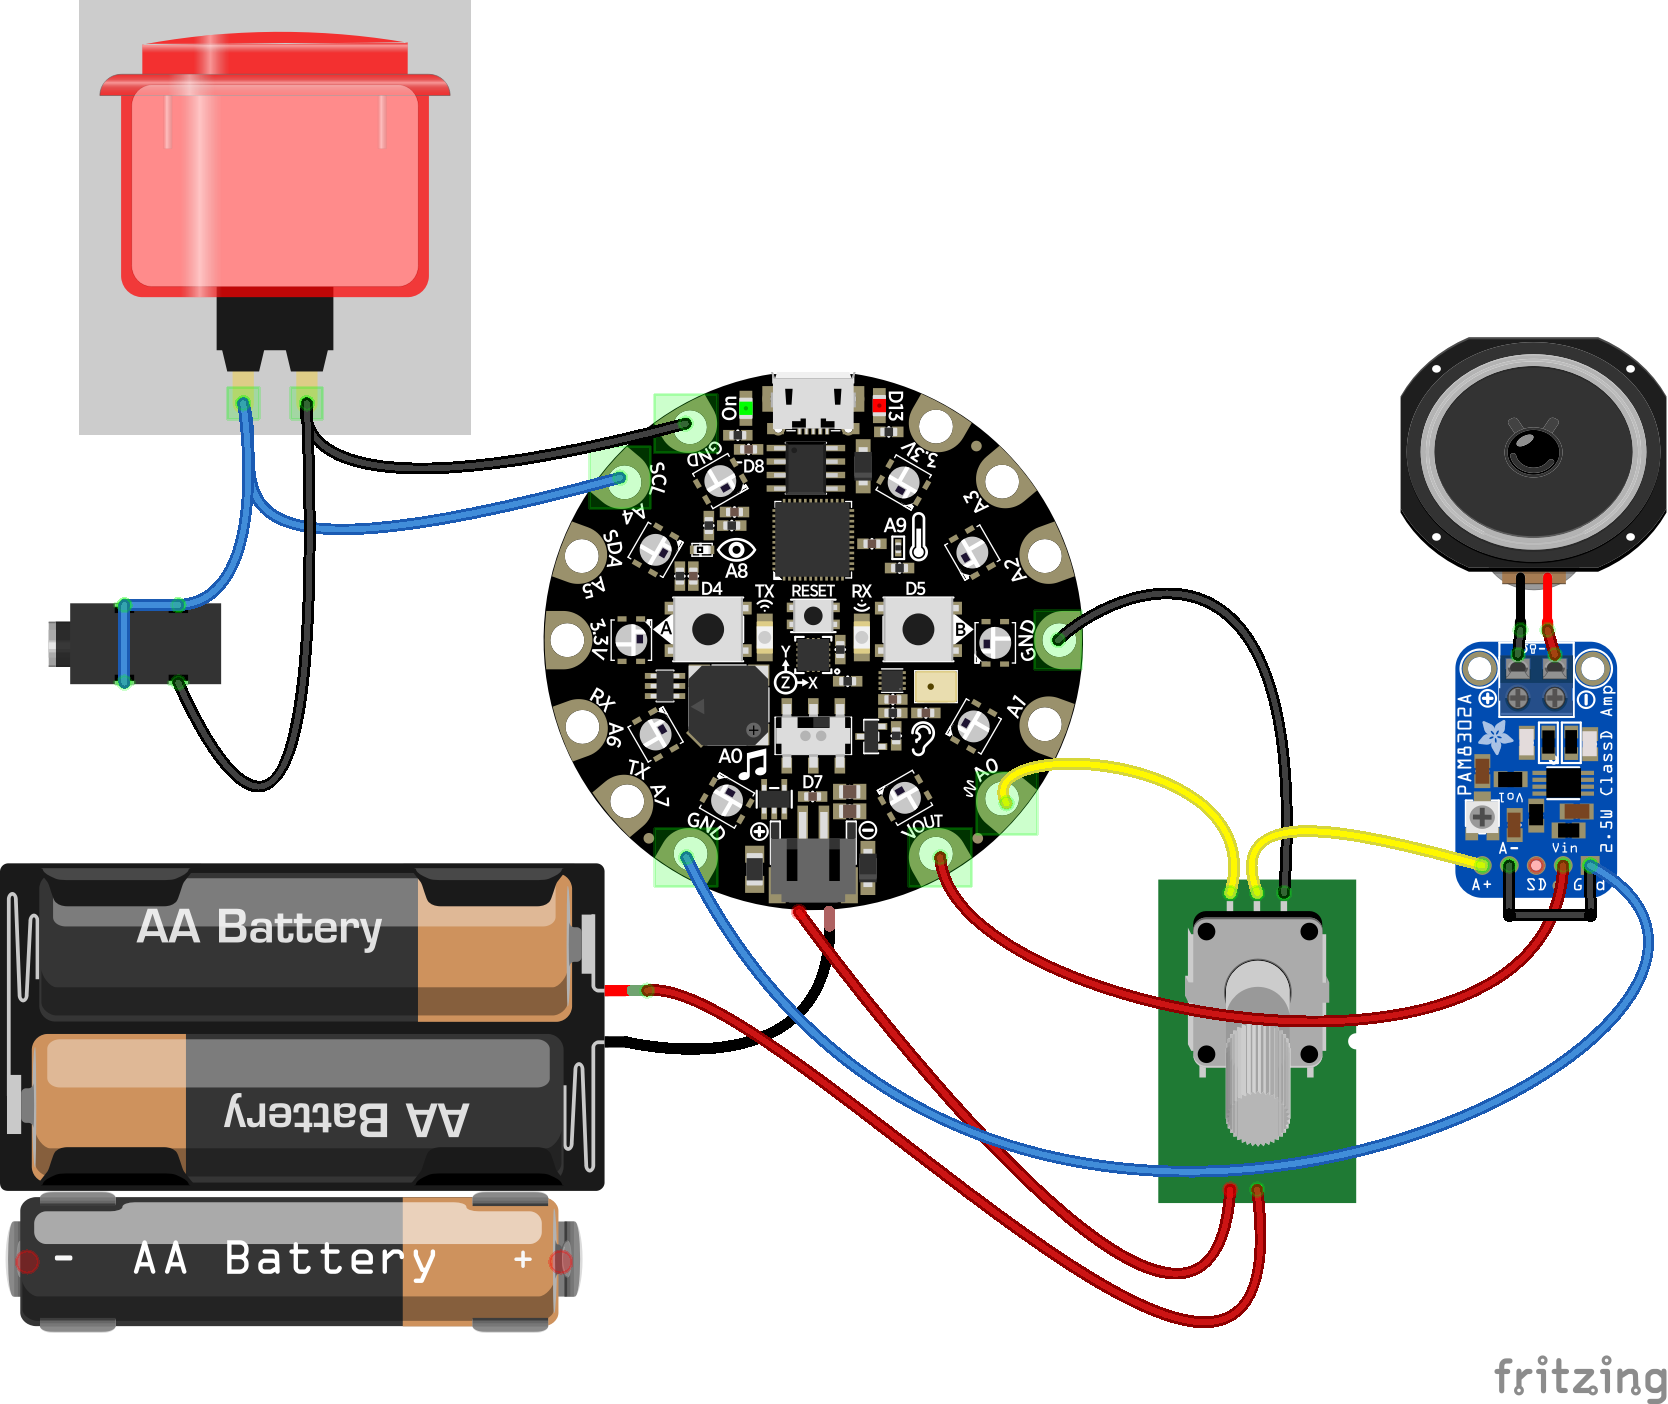 3d_printing_circuitdiagram_cpx_button.png